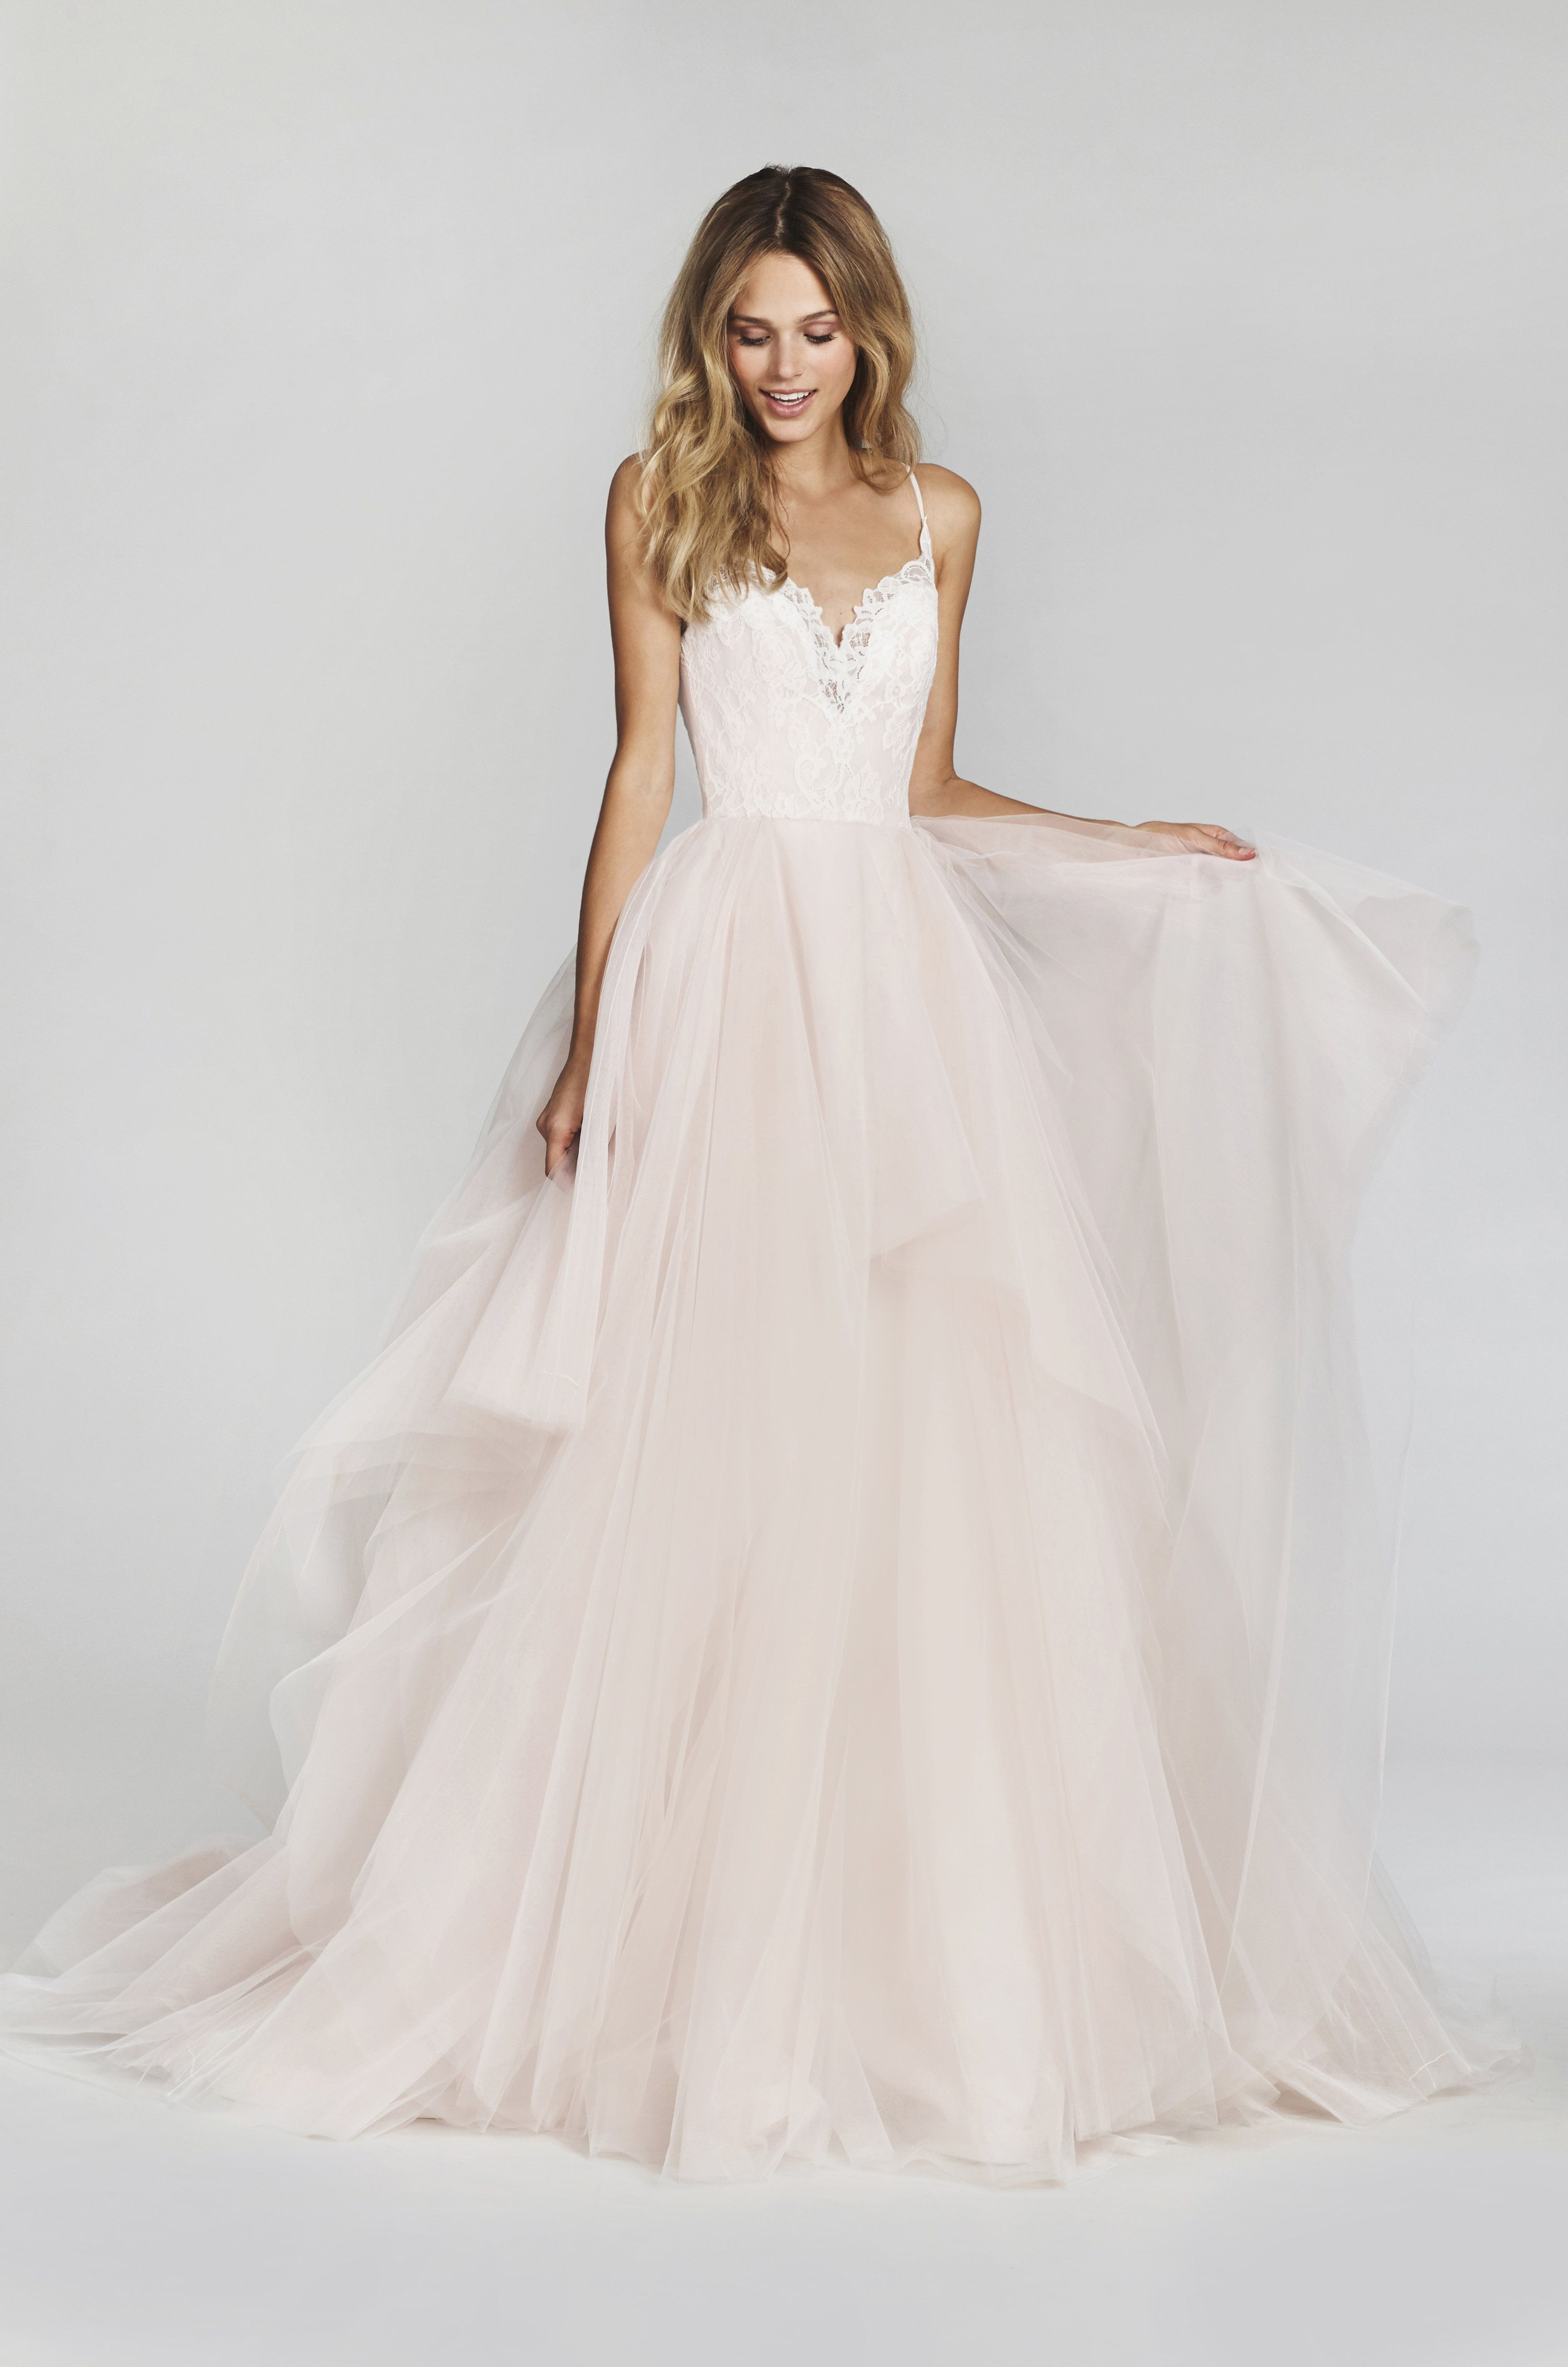 Bridal gowns and wedding dresses by jlm couture style lilou